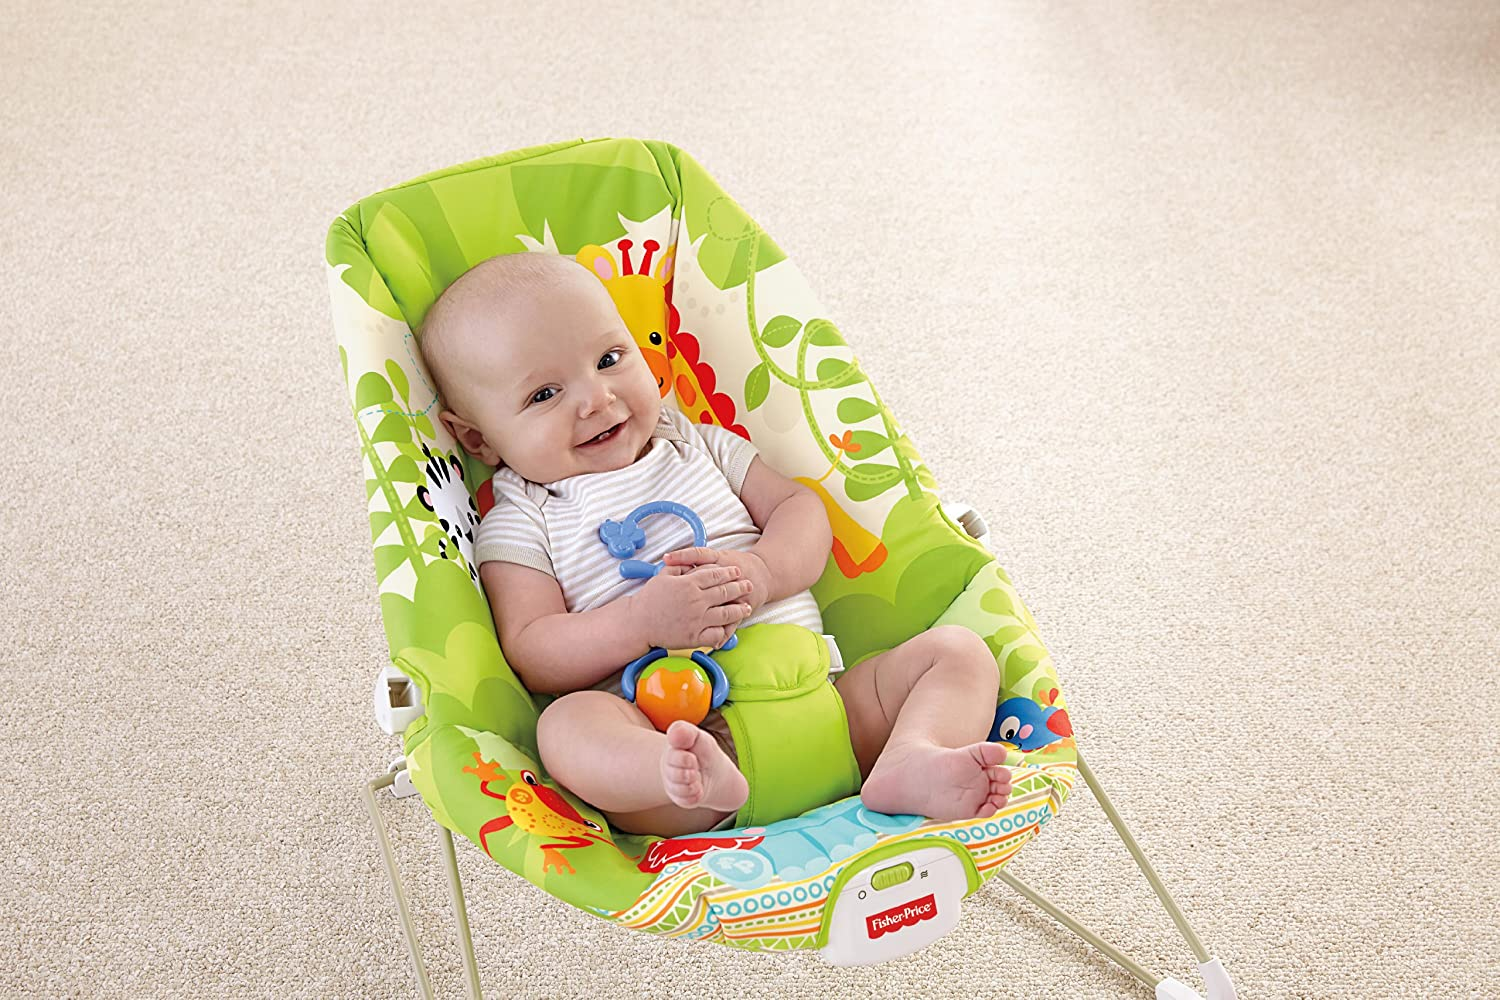 Baby rocker chair fisher price - Amazon Com Fisher Price Baby Bouncer Rainforest Friends Discontinued By Manufacturer Infant Bouncers And Rockers Baby